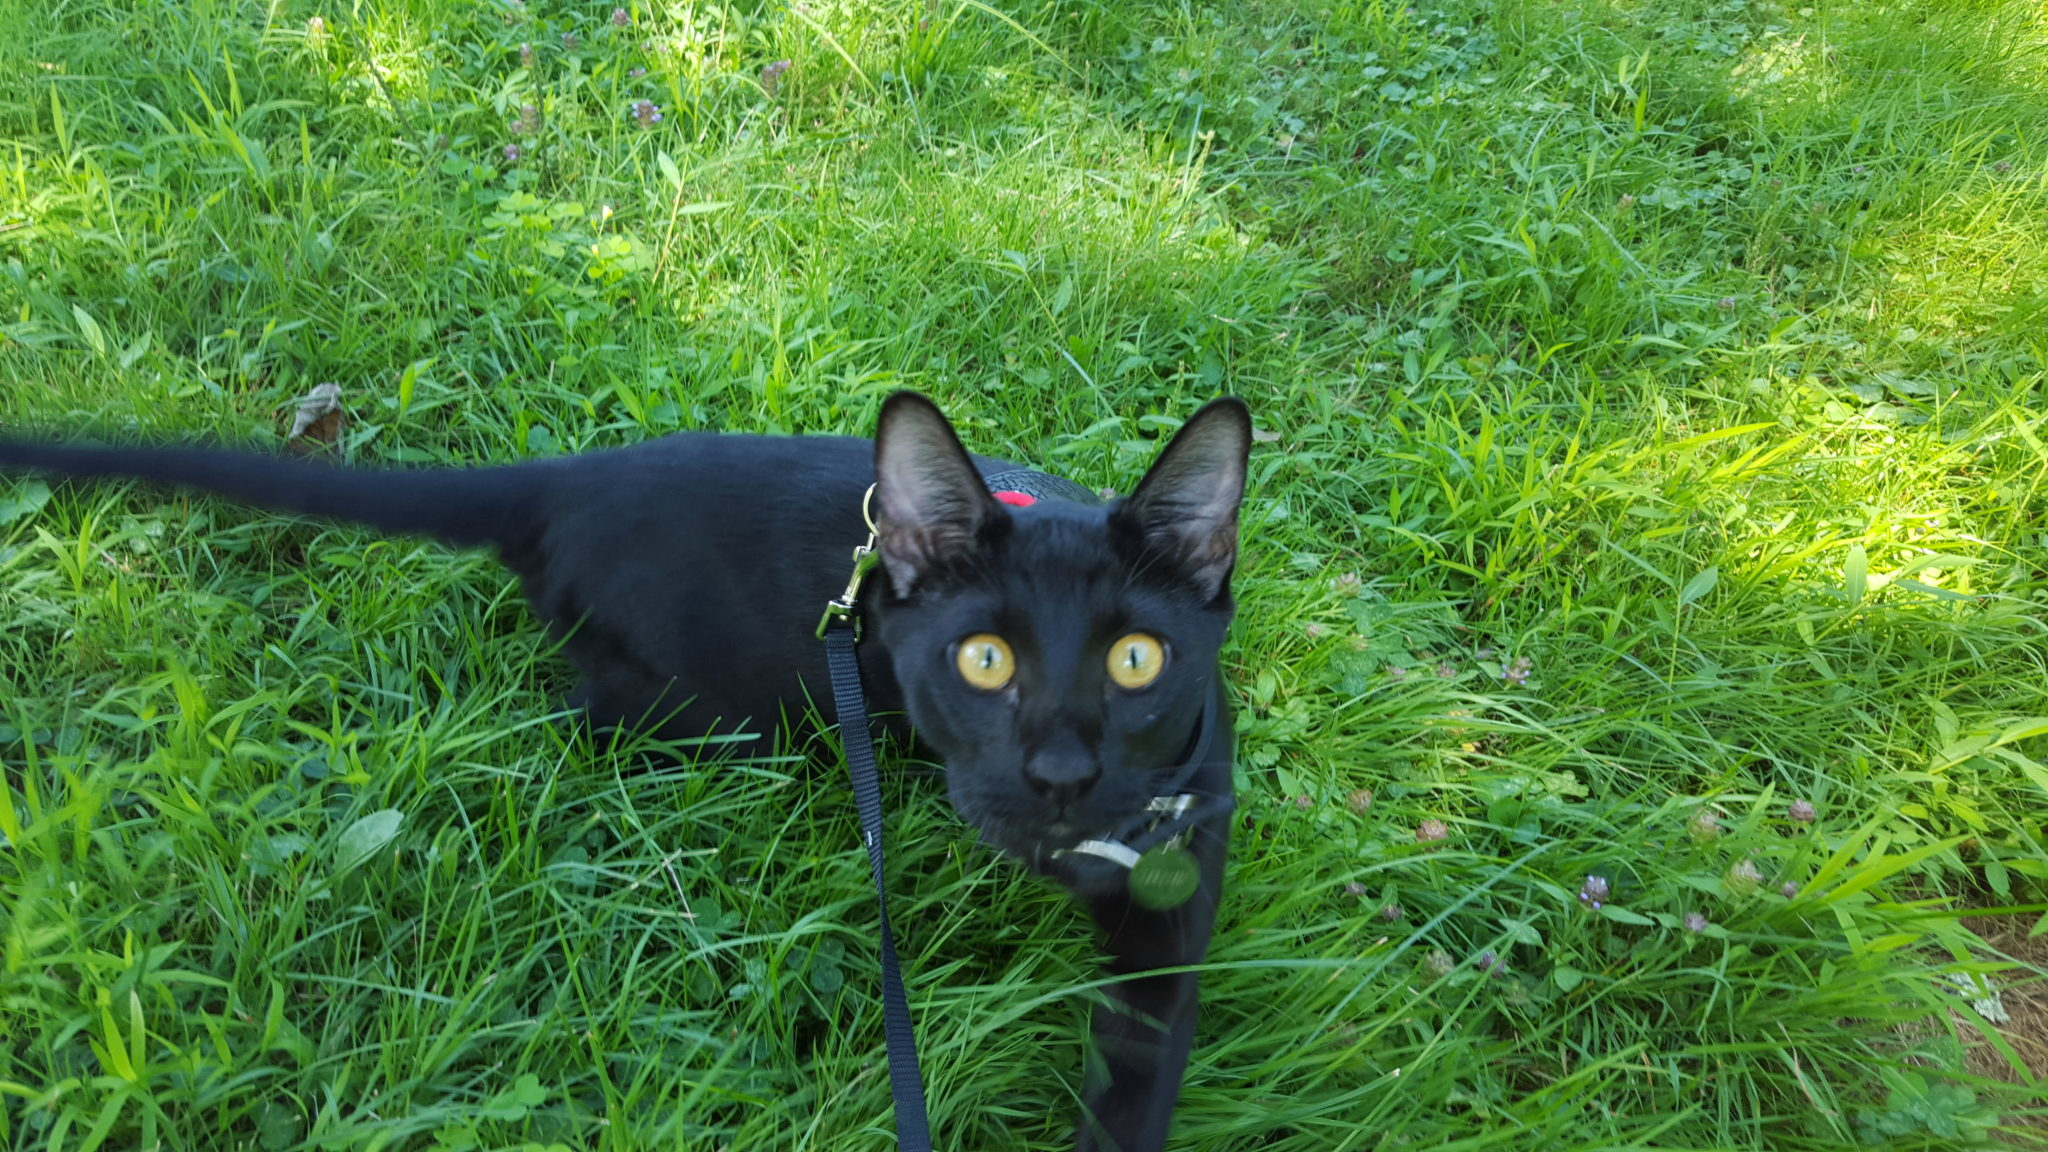 Sirius Black's green eyes pop with the grassy backdrop